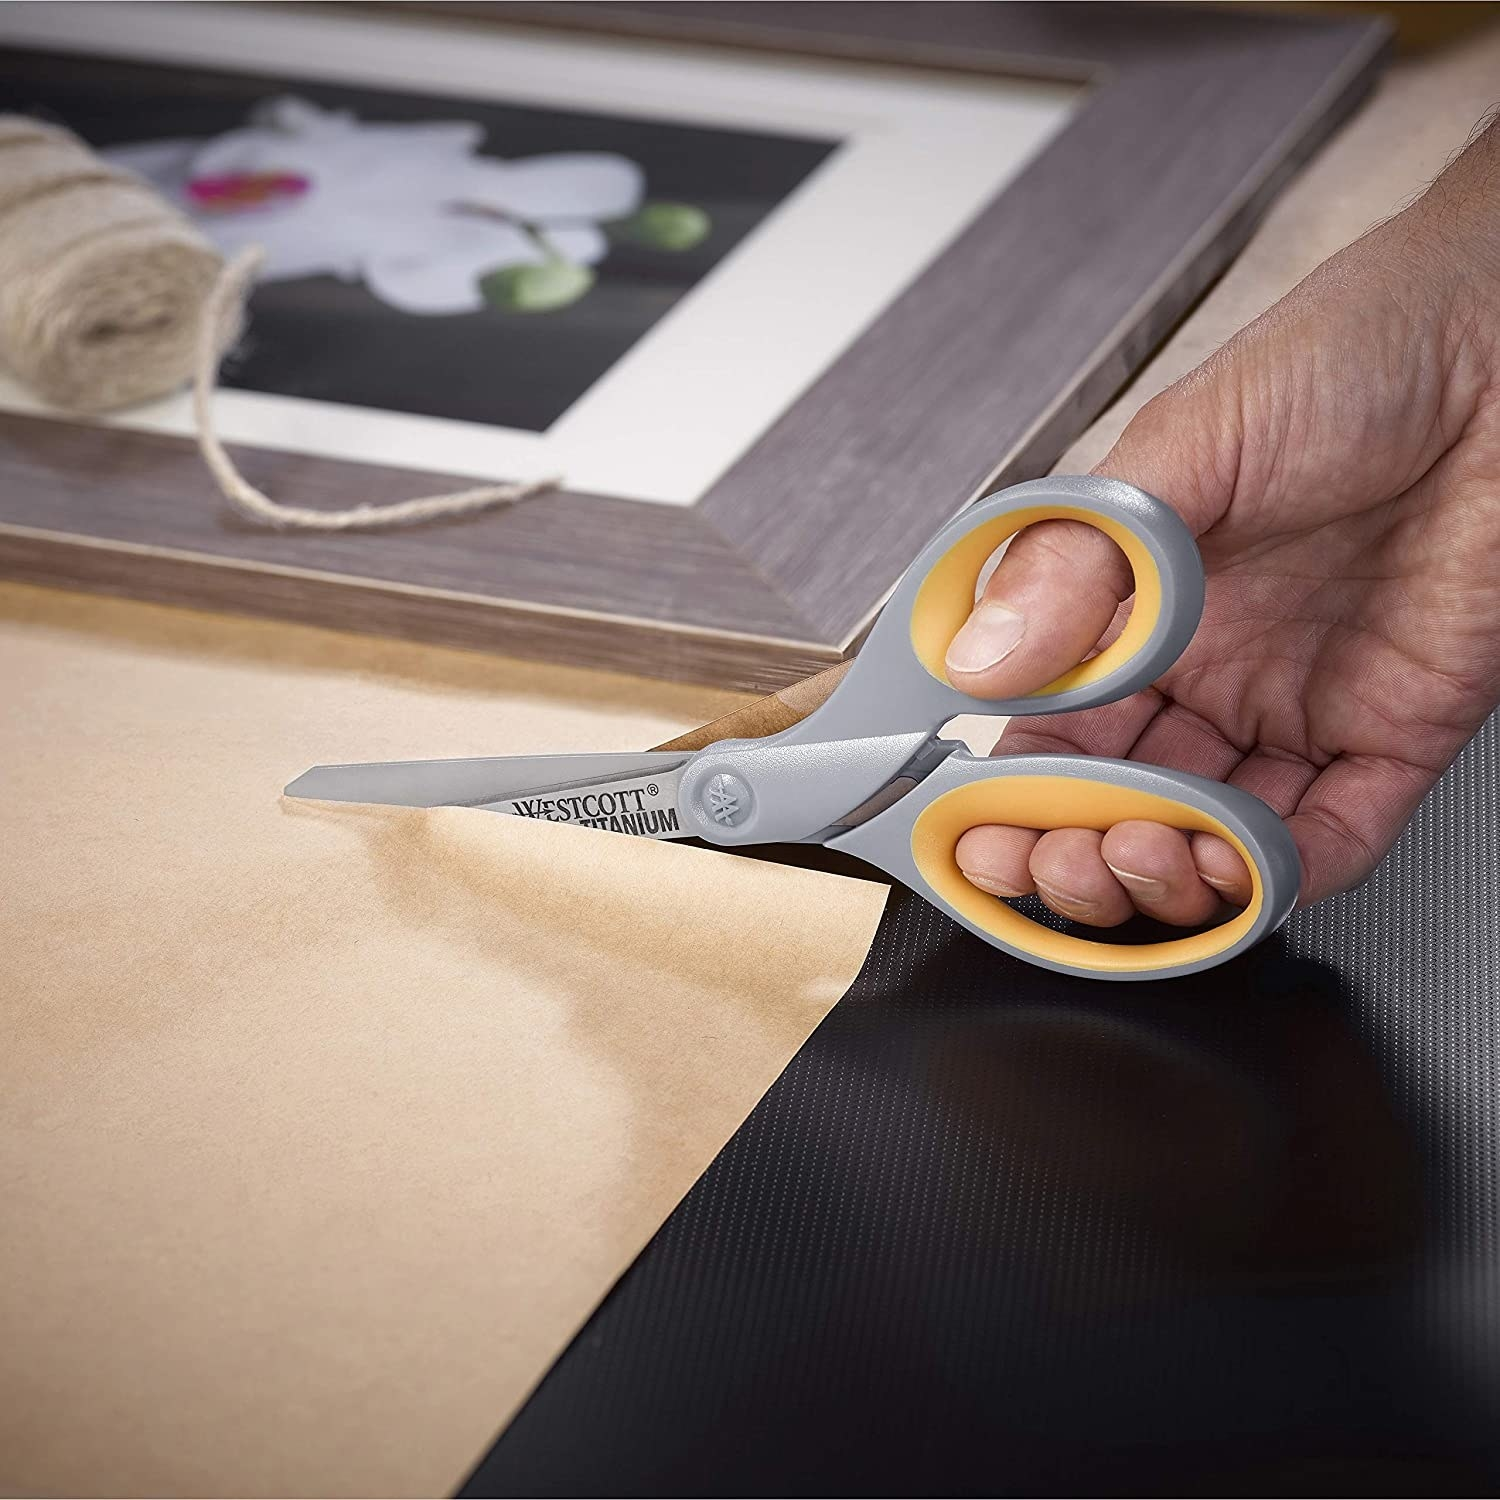 A model's hand using a pair of gray and orange scissors